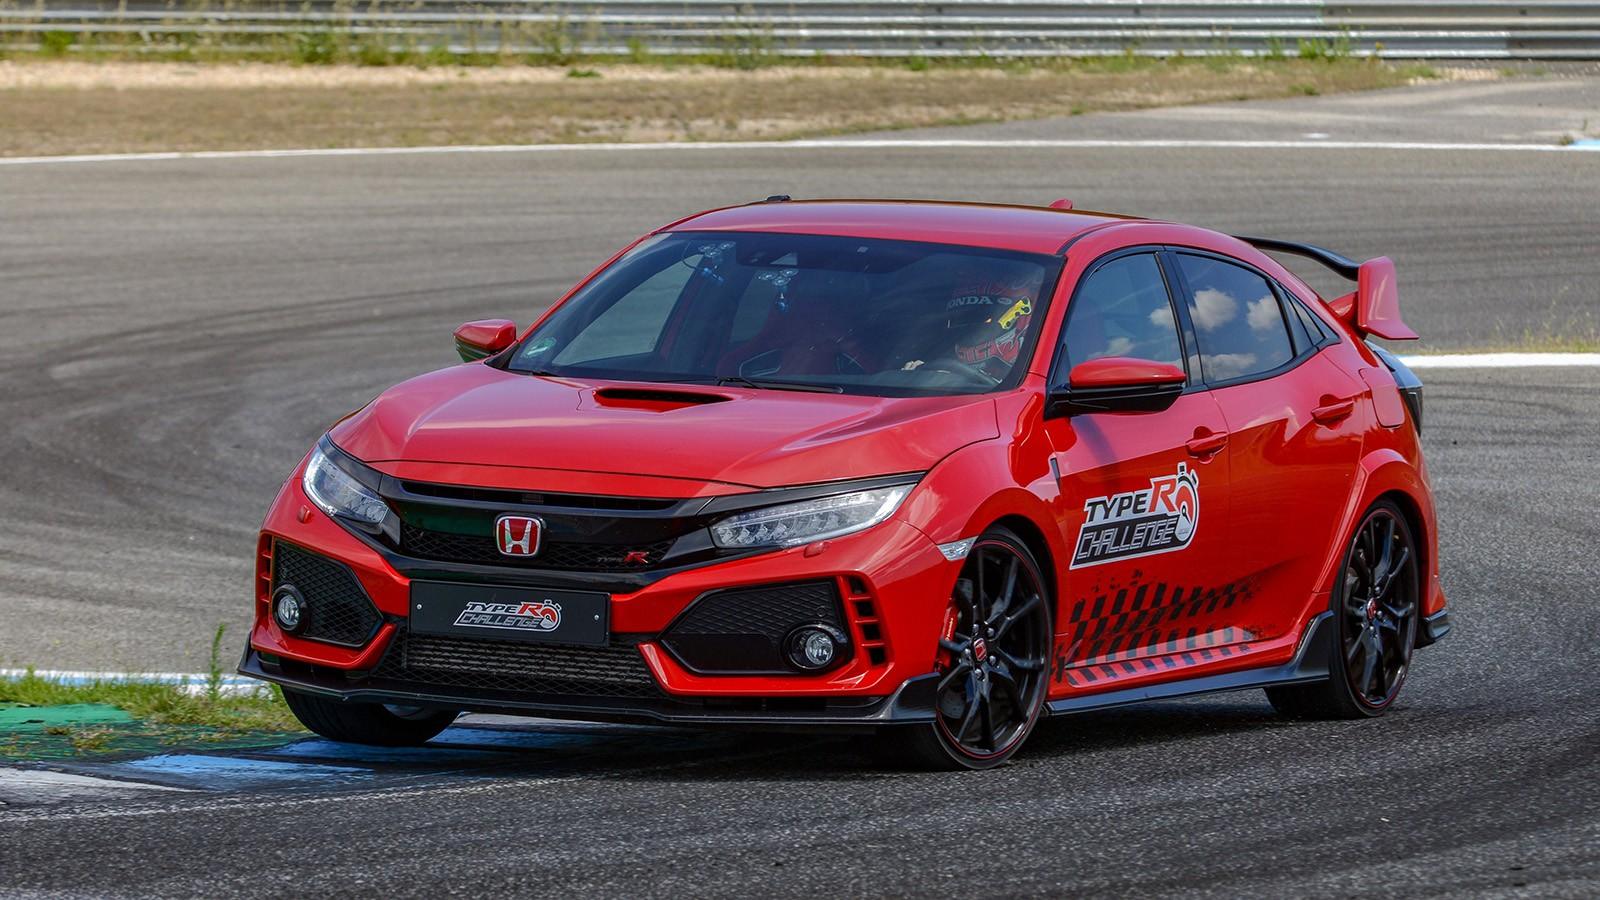 Honda Civic Type R sets new lap record at Estoril circuit in Por